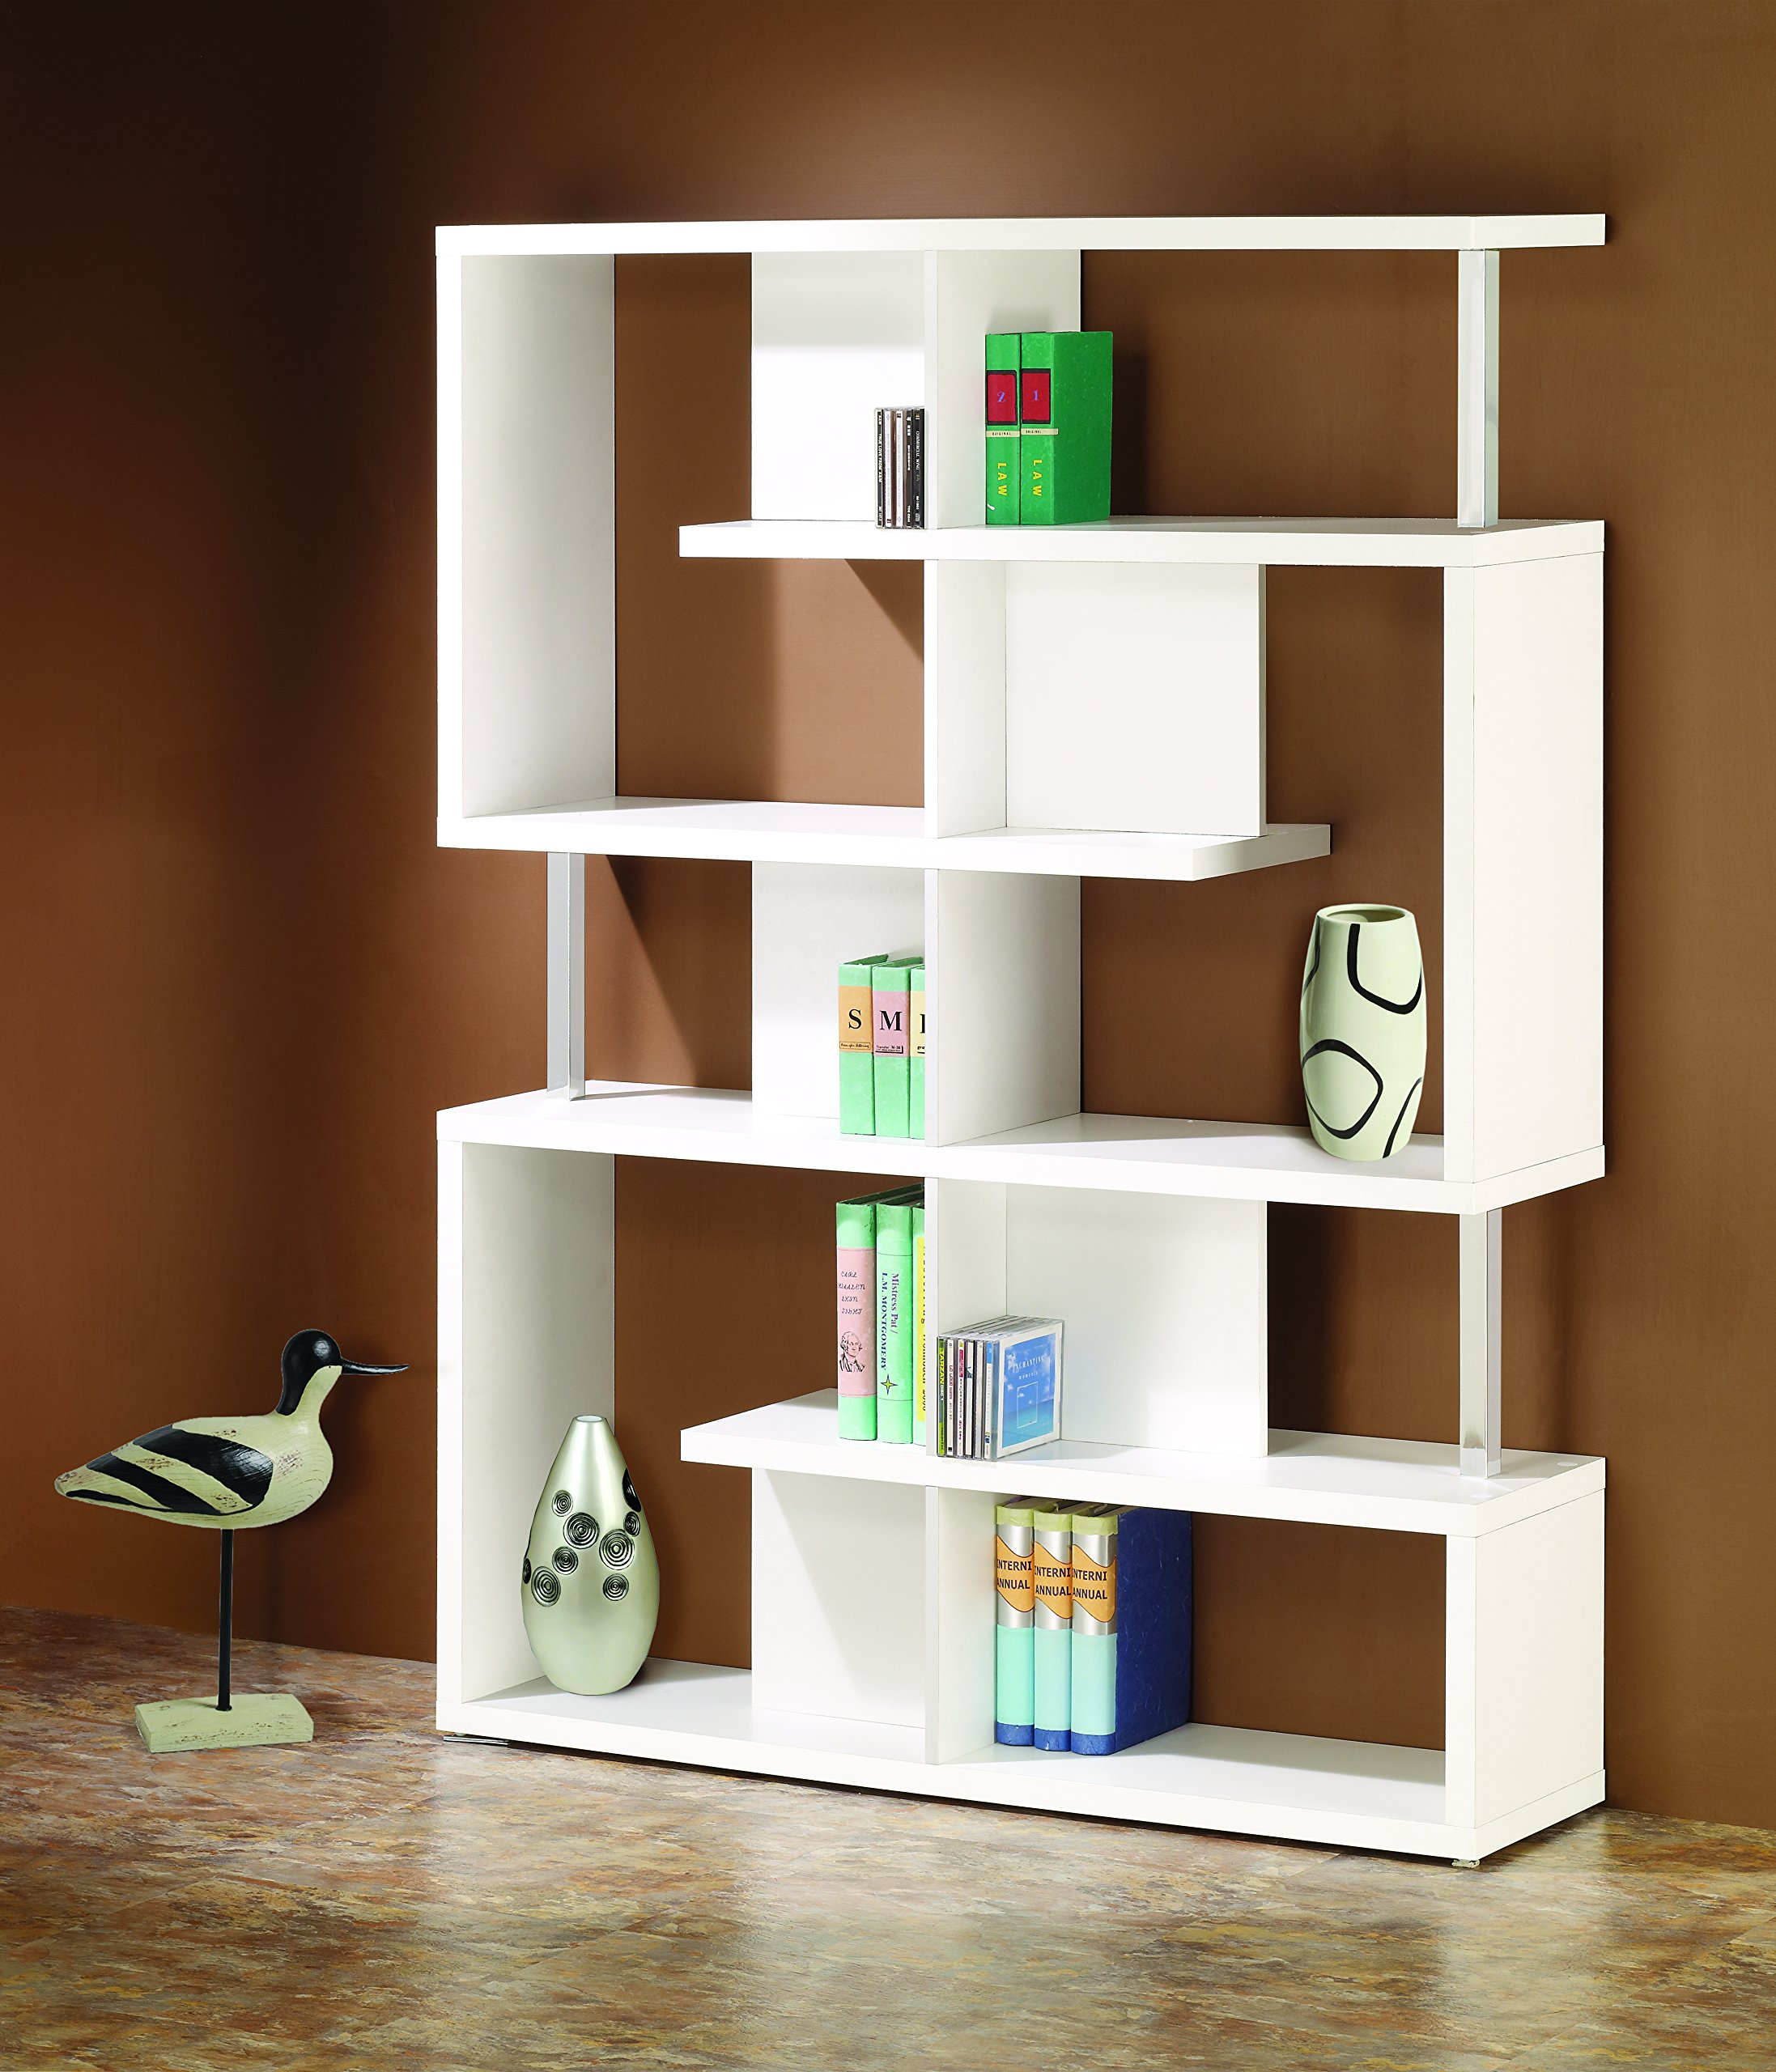 Coaster Home Furnishings  Modern Contemporary Five Tier Double Bookcase Storage Shelf with Chrome Details - Black by Coaster Home Furnishings